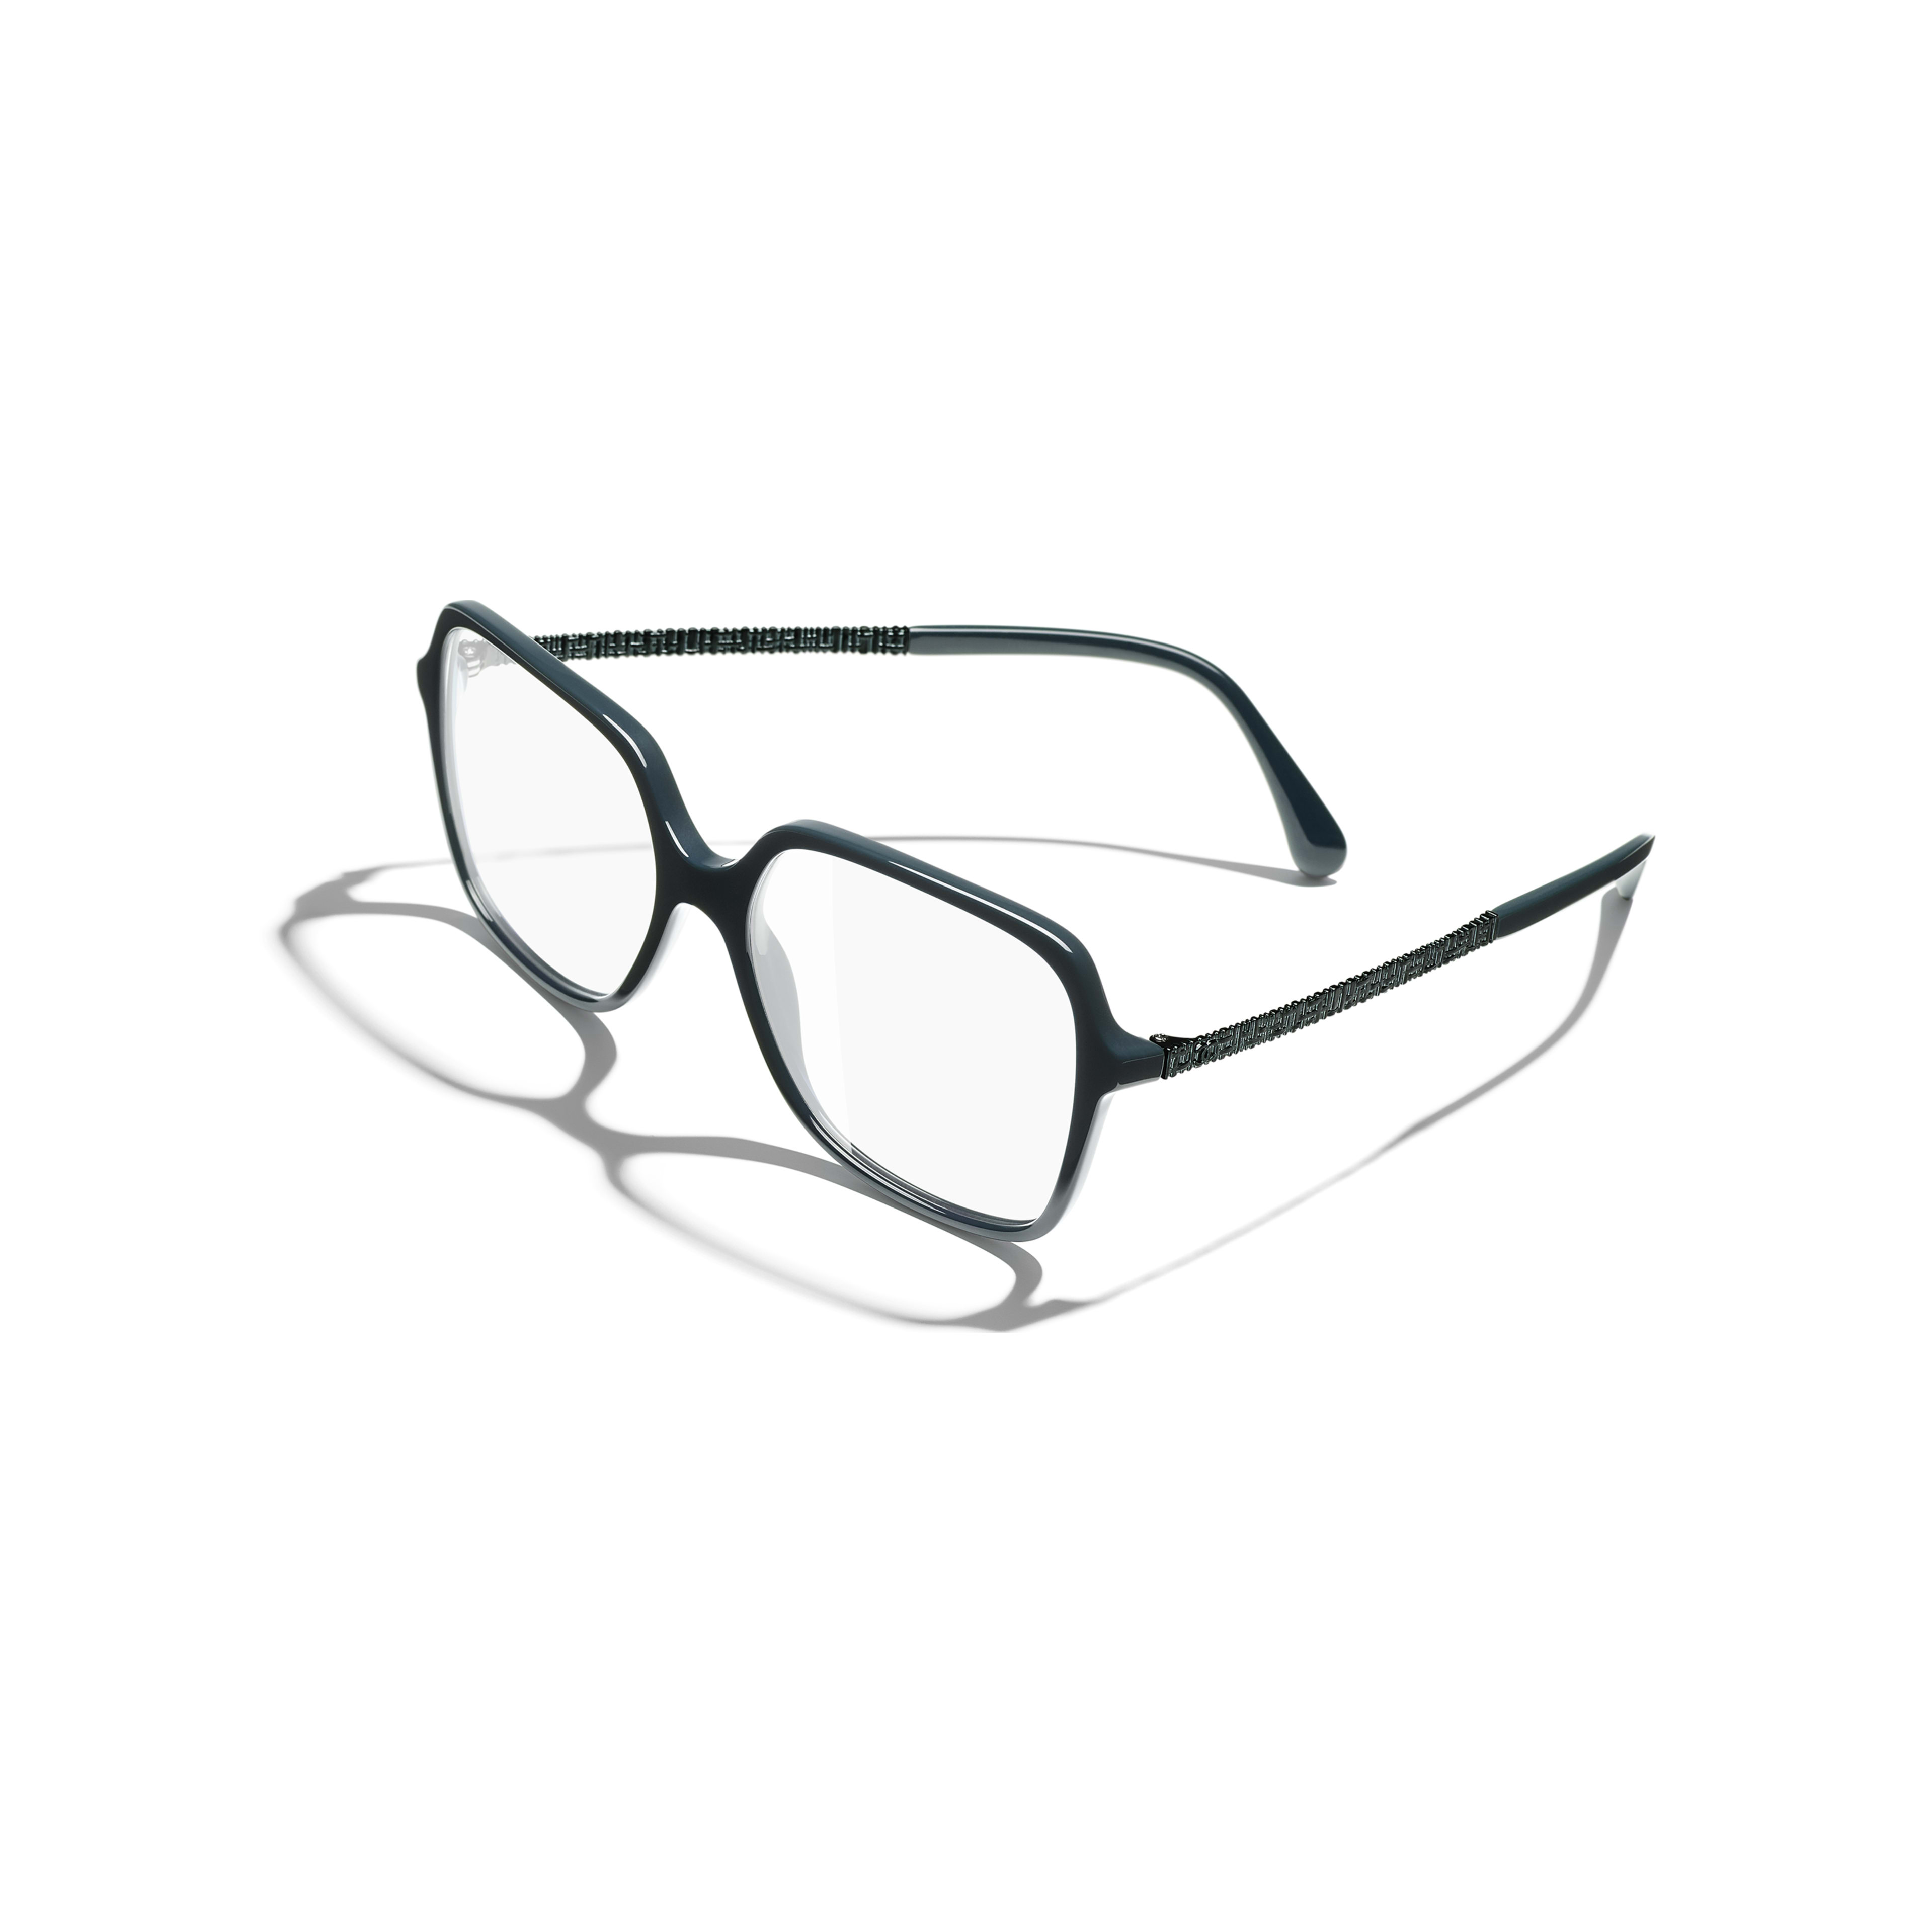 Square Eyeglasses - Dark Green - Acetate - Extra view - see full sized version